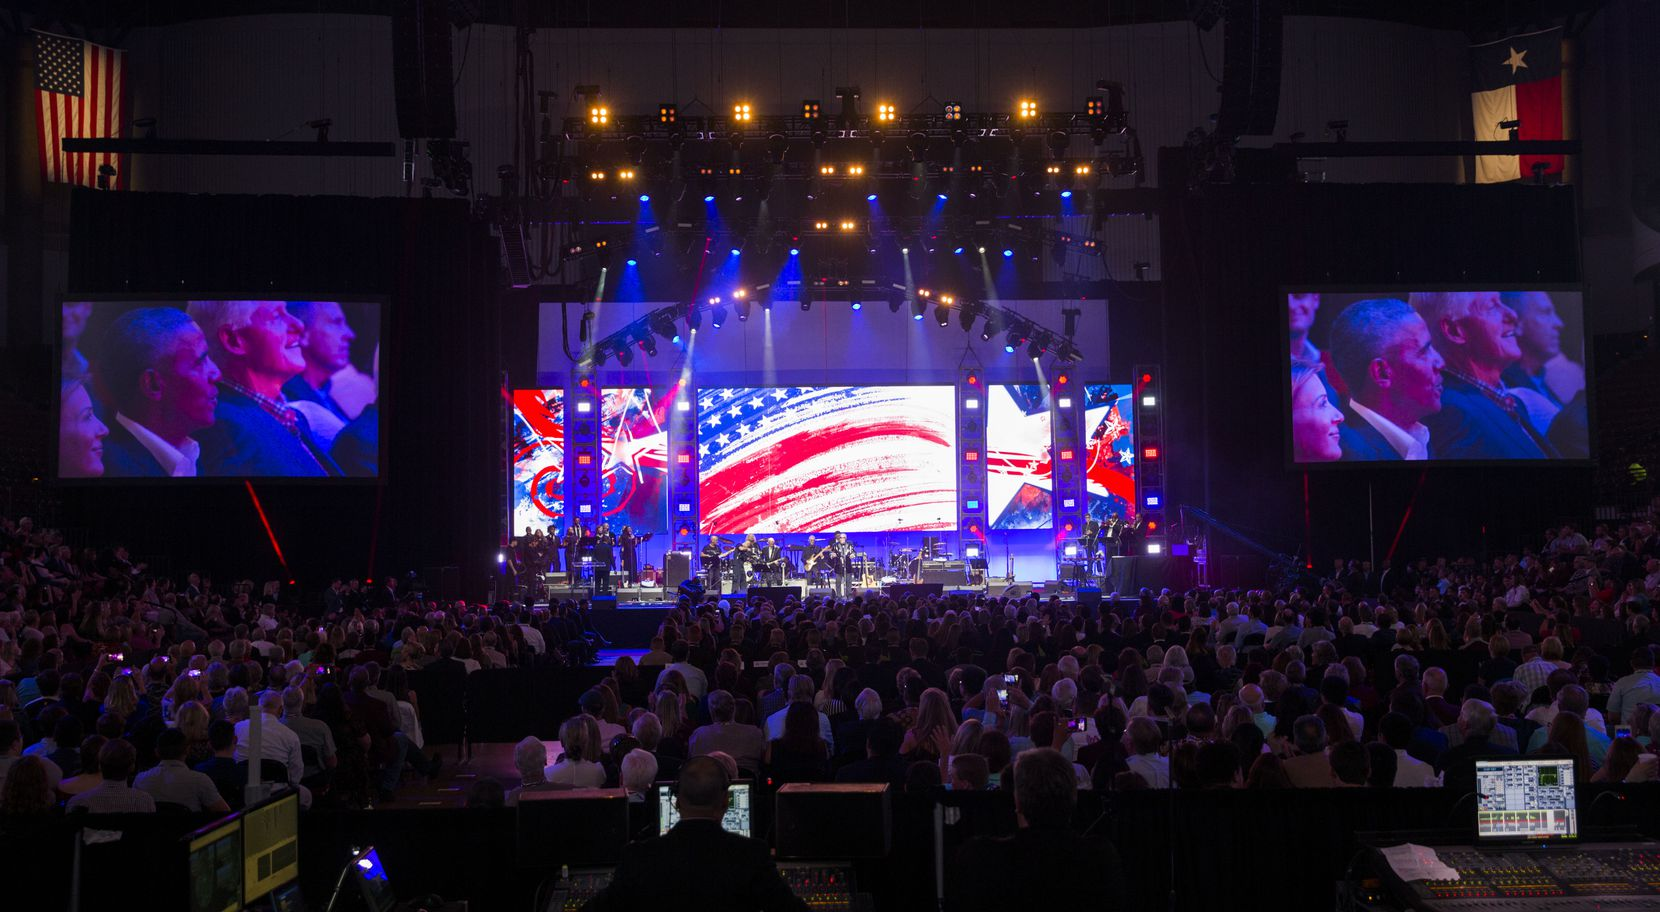 Former presidents Barack Obama and Bill Clinton are shown on video screens as Sam Moore performs during Deep from the Heart: The One America Appeal Concert.